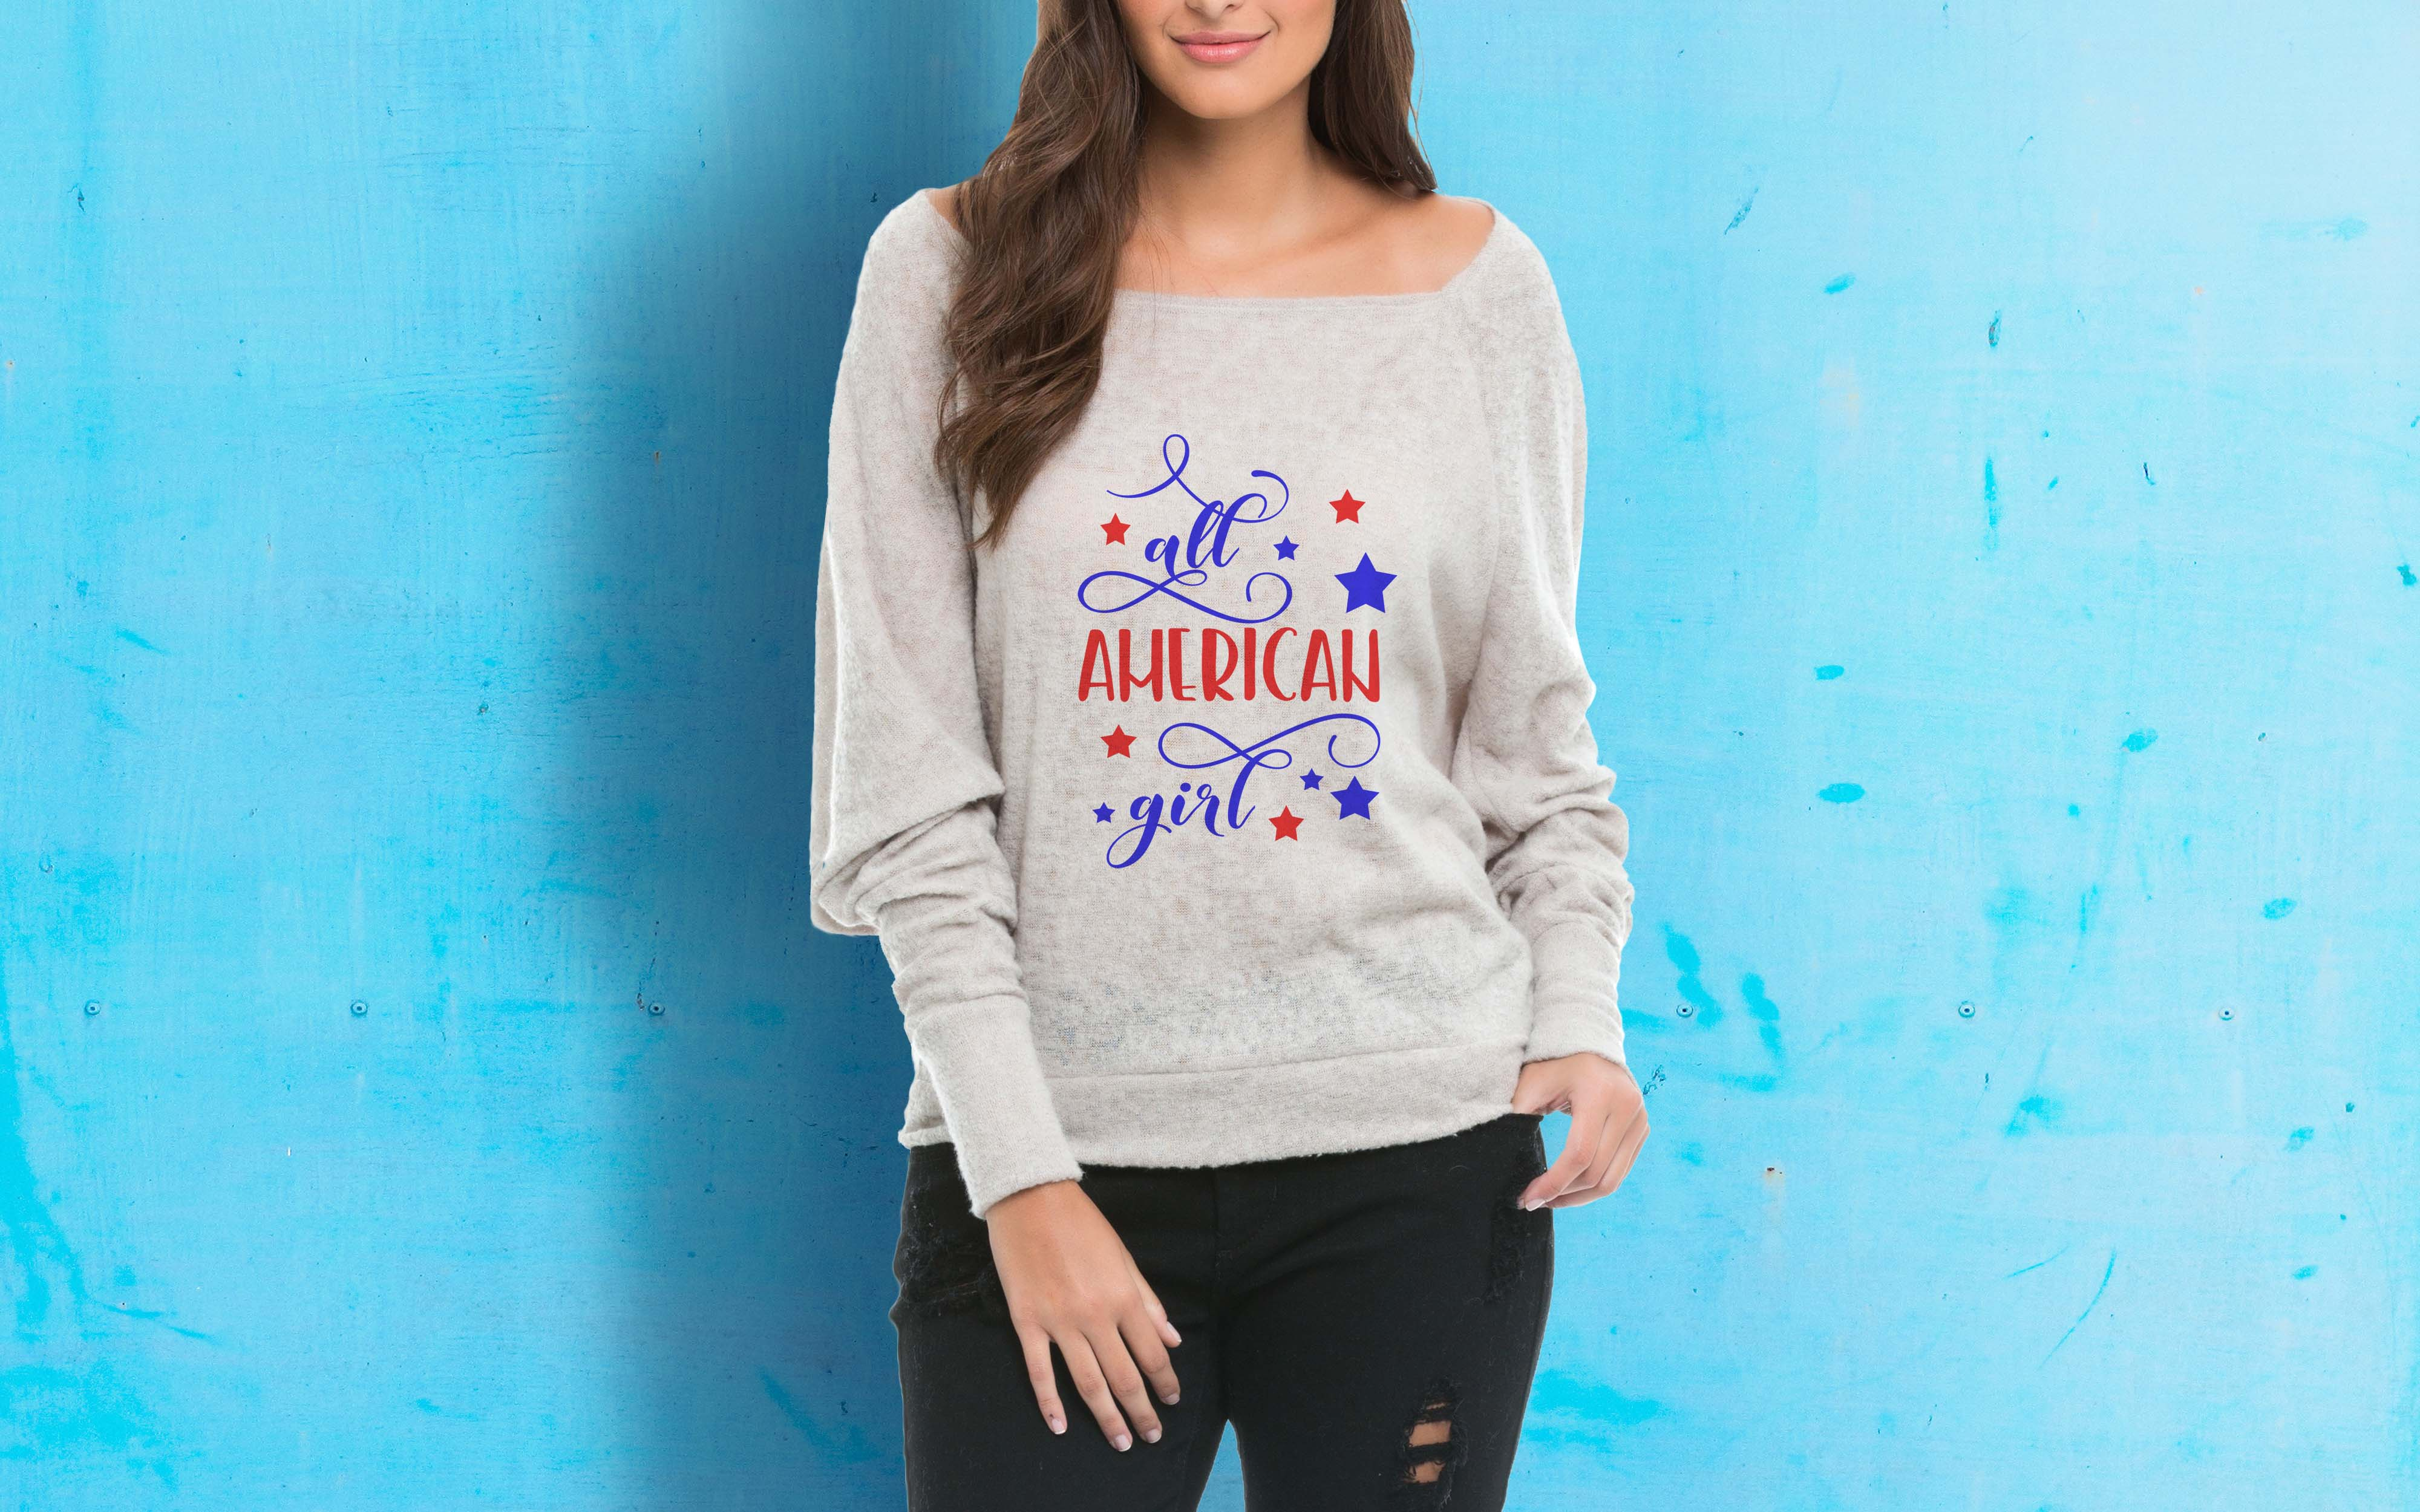 All American girl SVG PNG EPS DXF example image 2